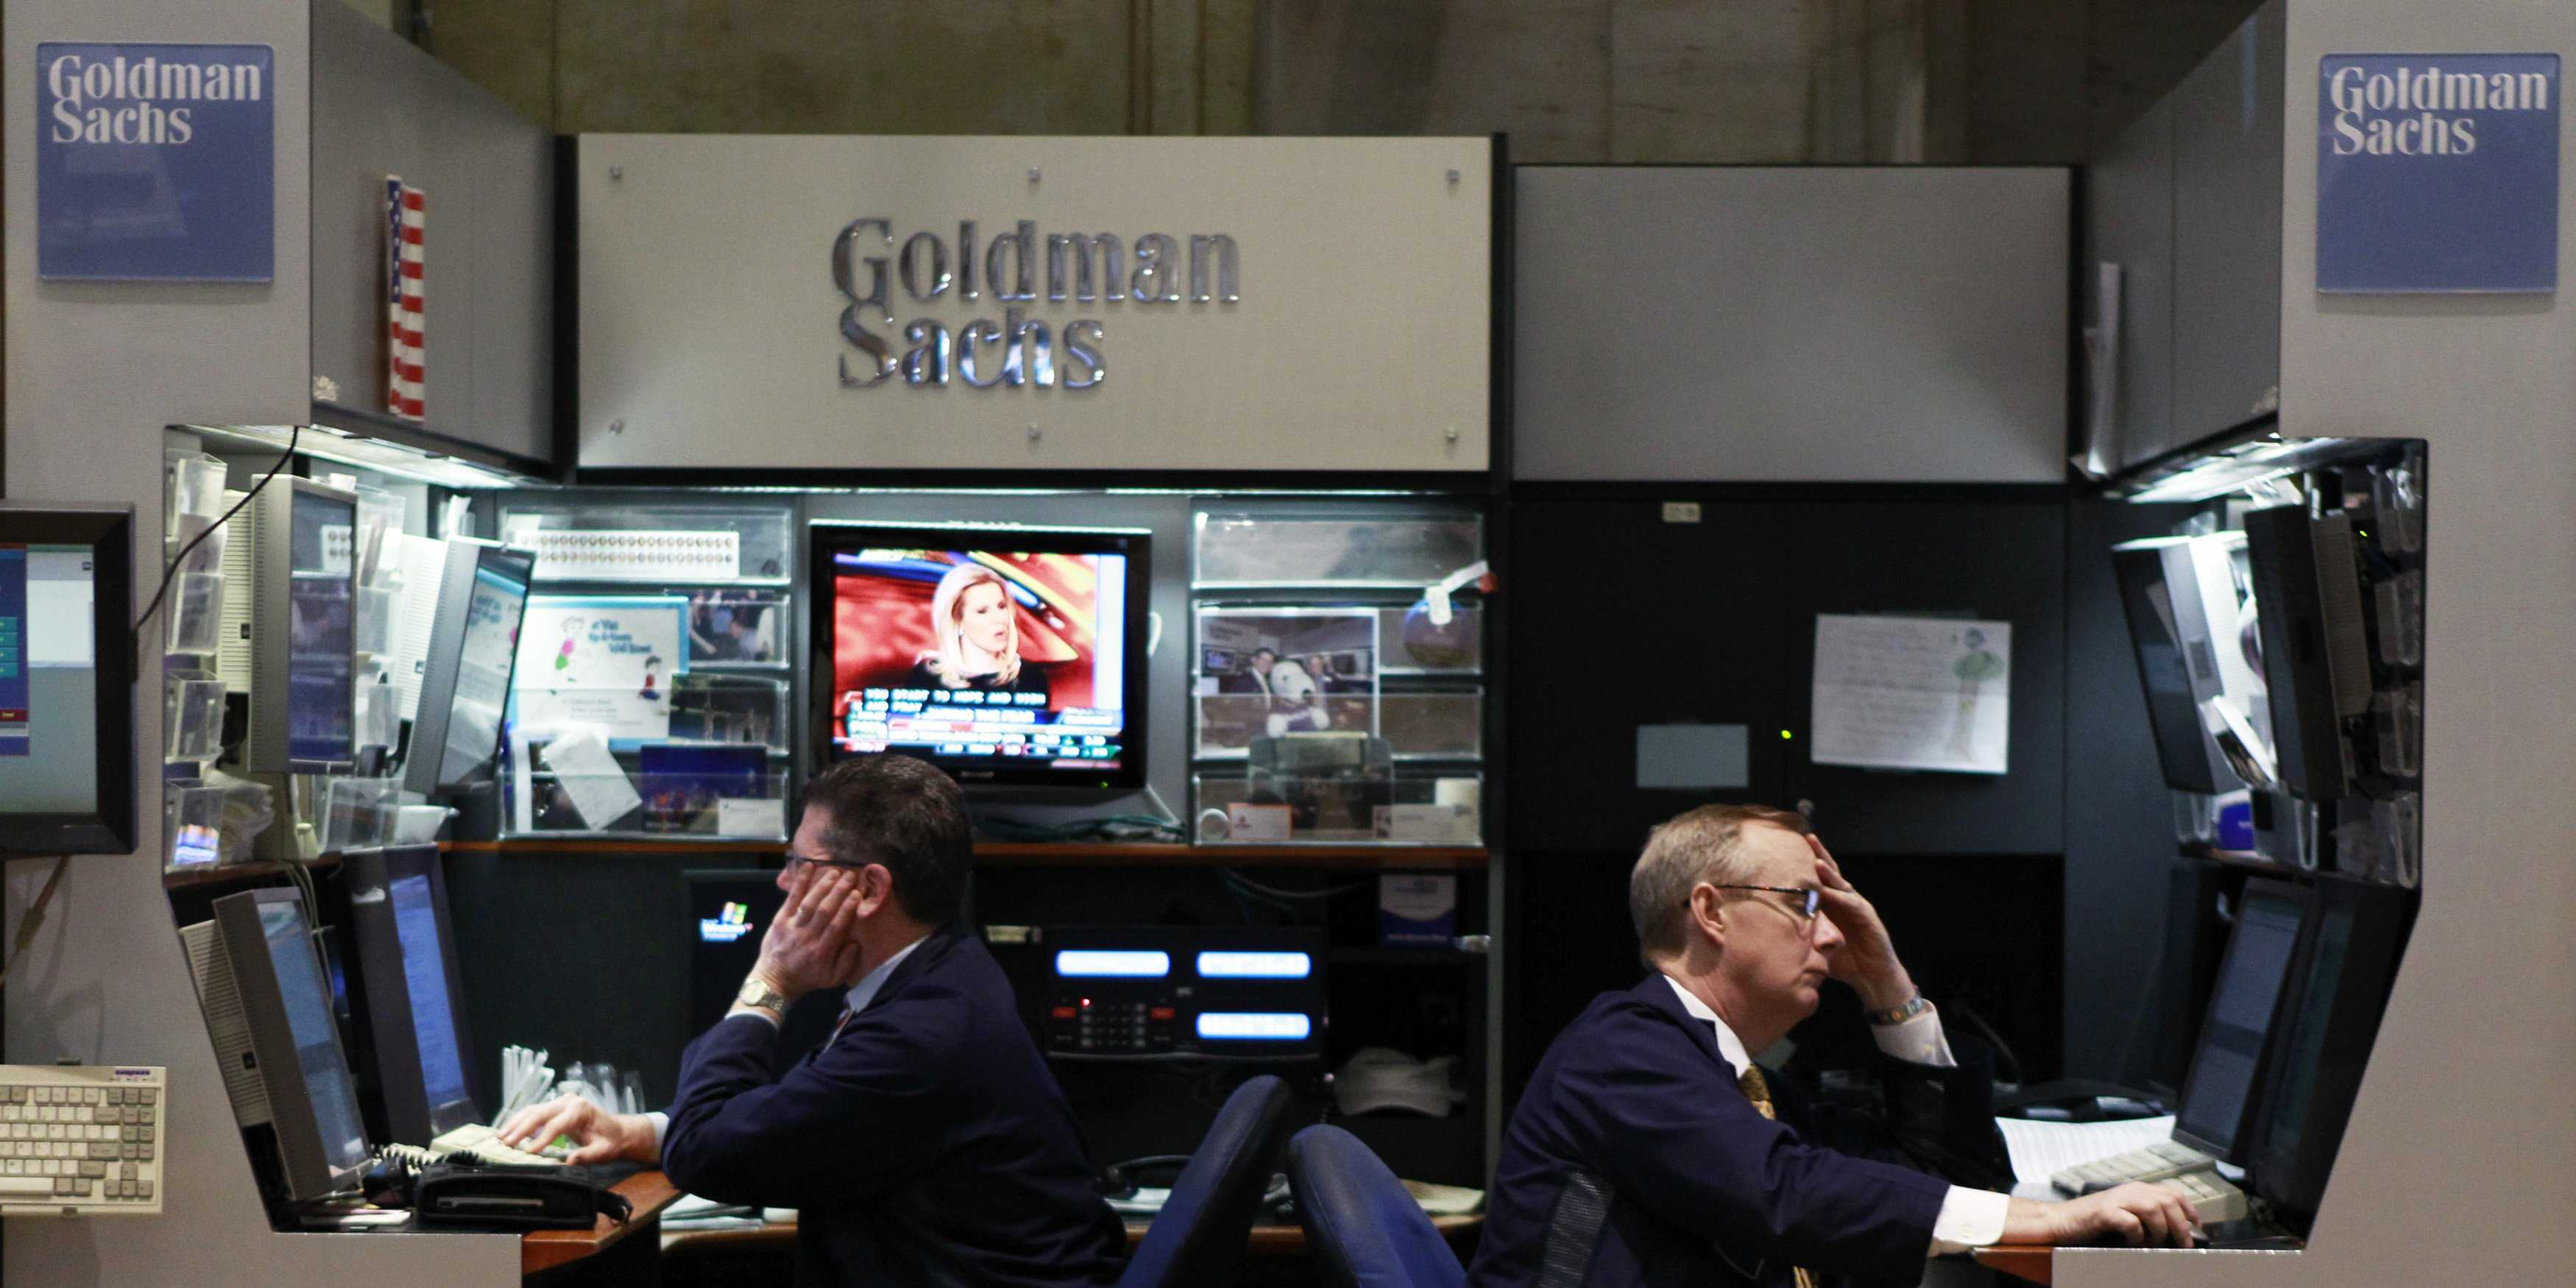 goldman-sachs-explains-why-trading-on-wall-street-stinks-right-now